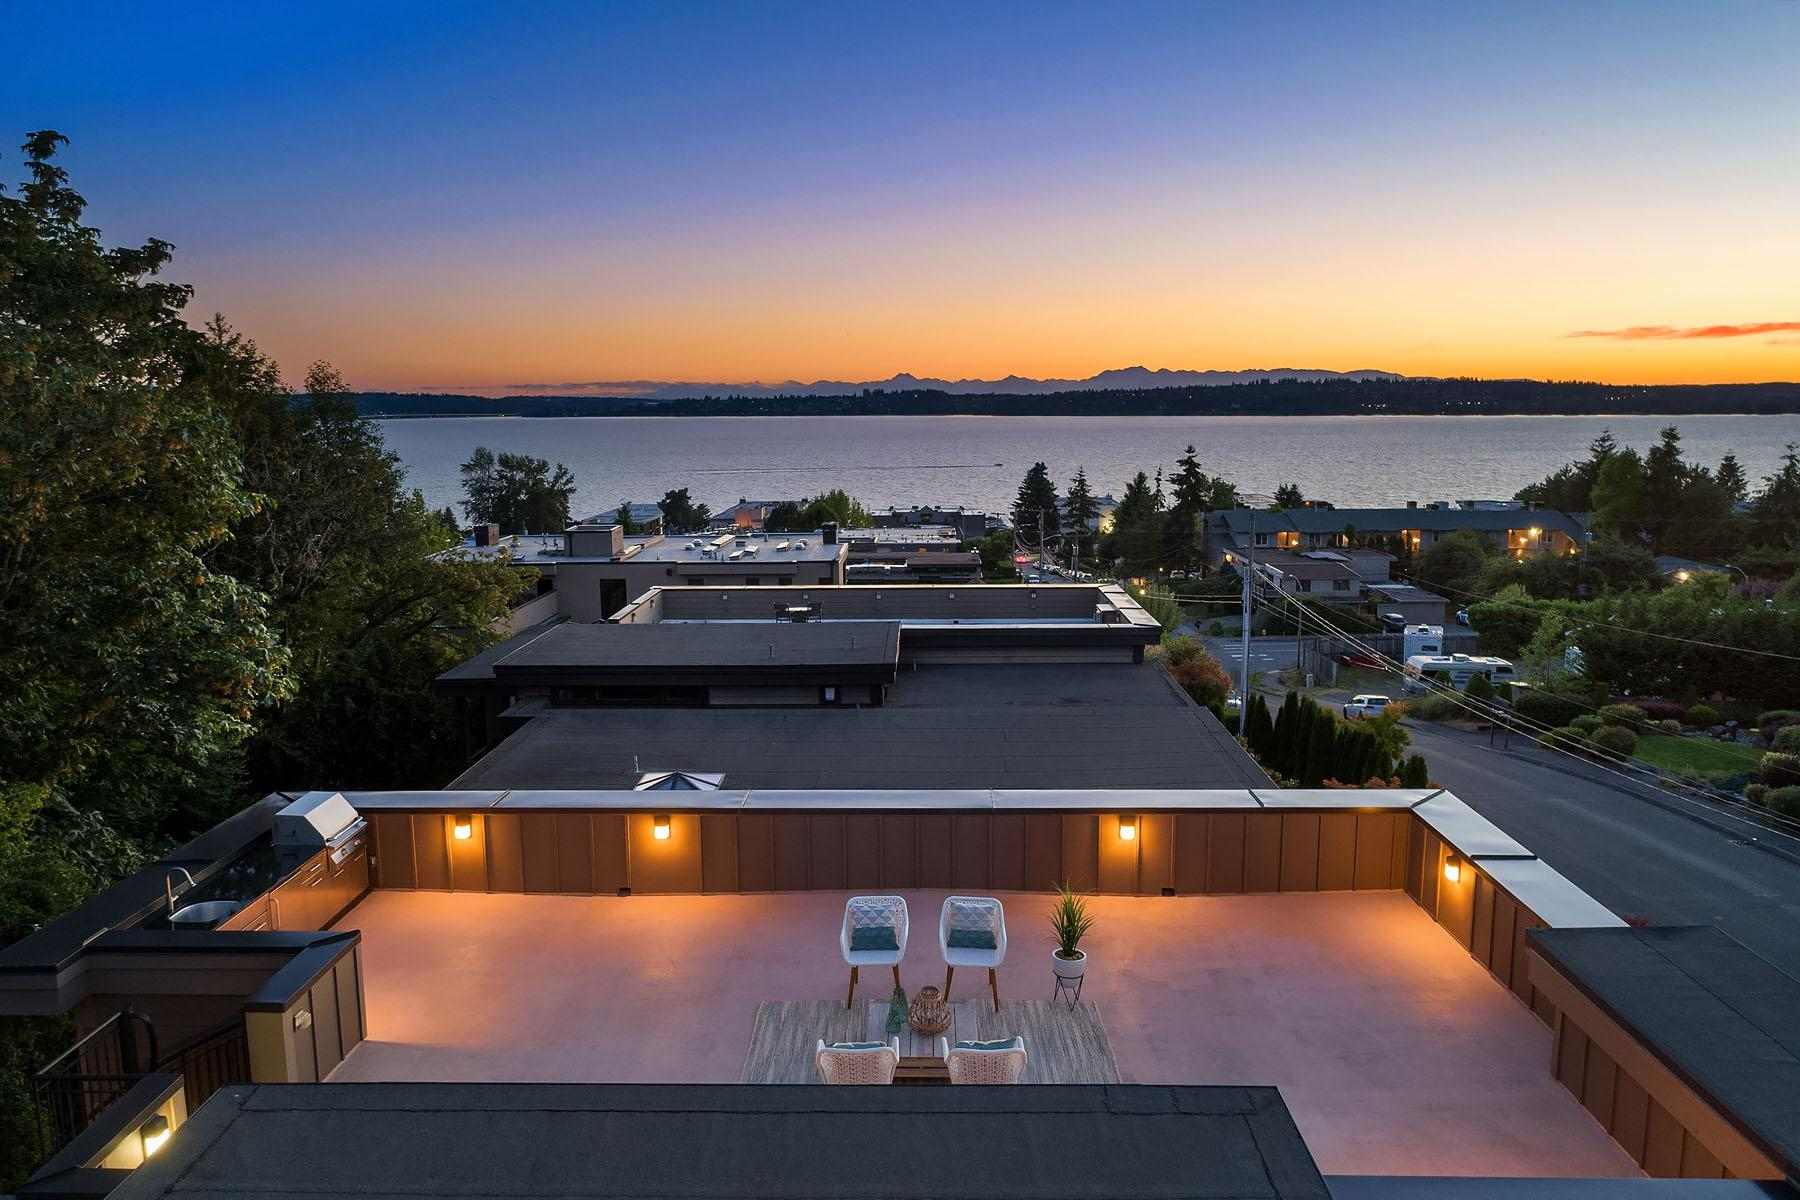 <p>Walking distance to Kirkland's restaurants, shopping and waterfront - this 4 bed/2.75 bath is selling by Windermere's Max Rombakh for $2,299,000. Home's features include a wine cellar, rooftop deck, and probably most notably, the home backs into a lush greenbelt - rare to find in the Houghton neighborhood. MLS #1357060 for more info. (Image: Matthew Gallant, NW Clarity / Windermere)</p>